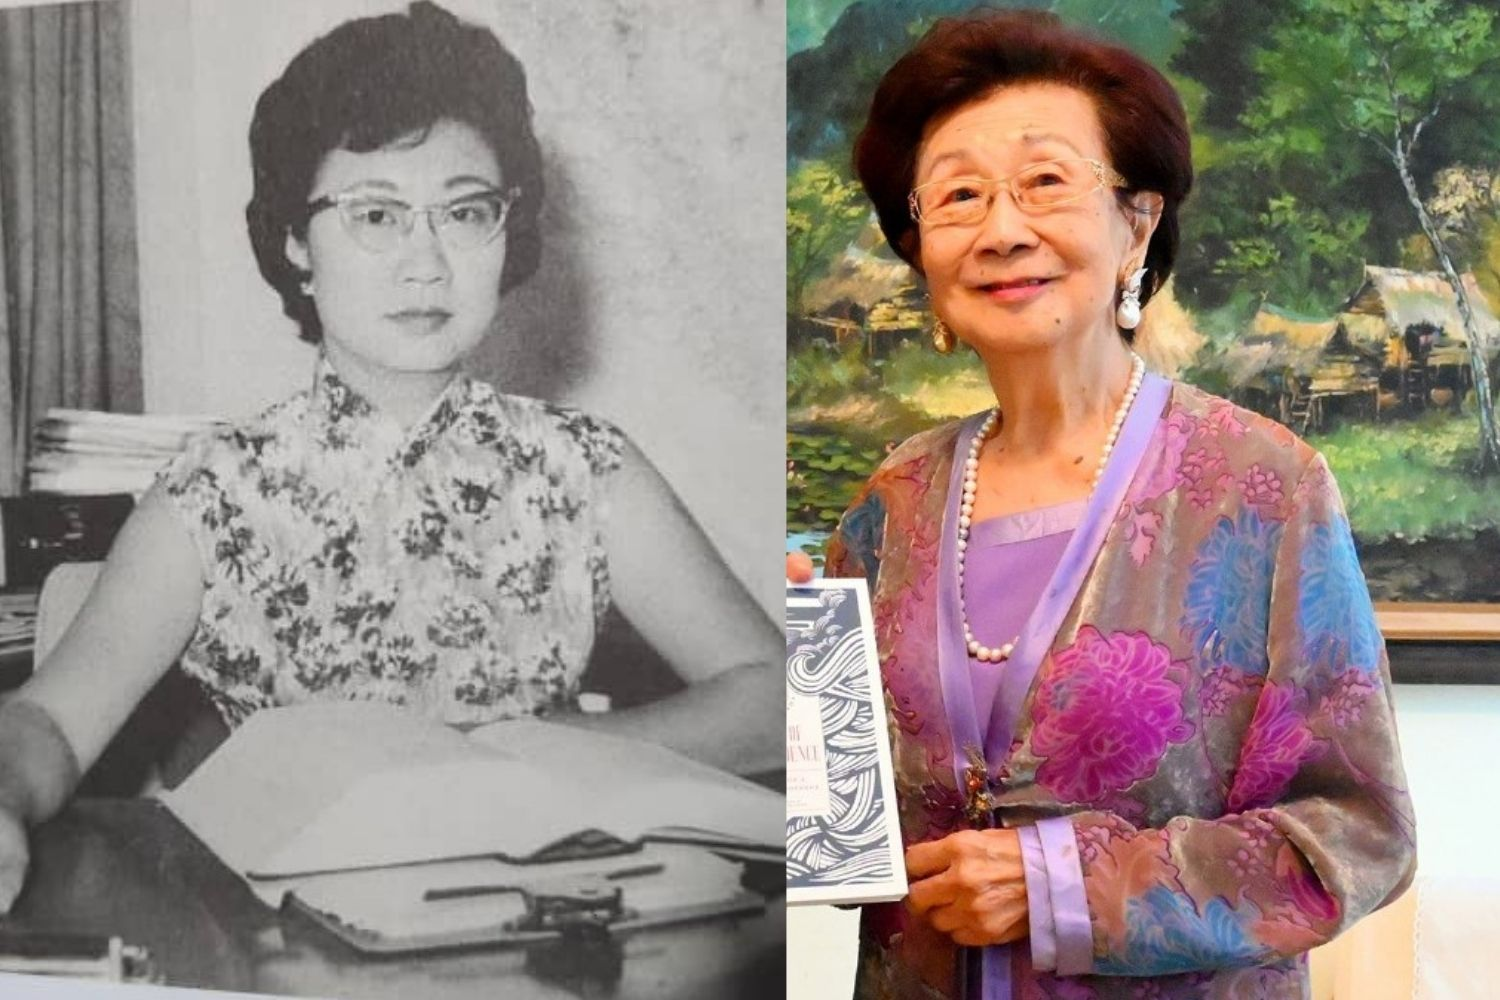 Trailblazers: To' Puan Gunn Chit Wha, One Of The First Female Lawyers In 1950s Malaya